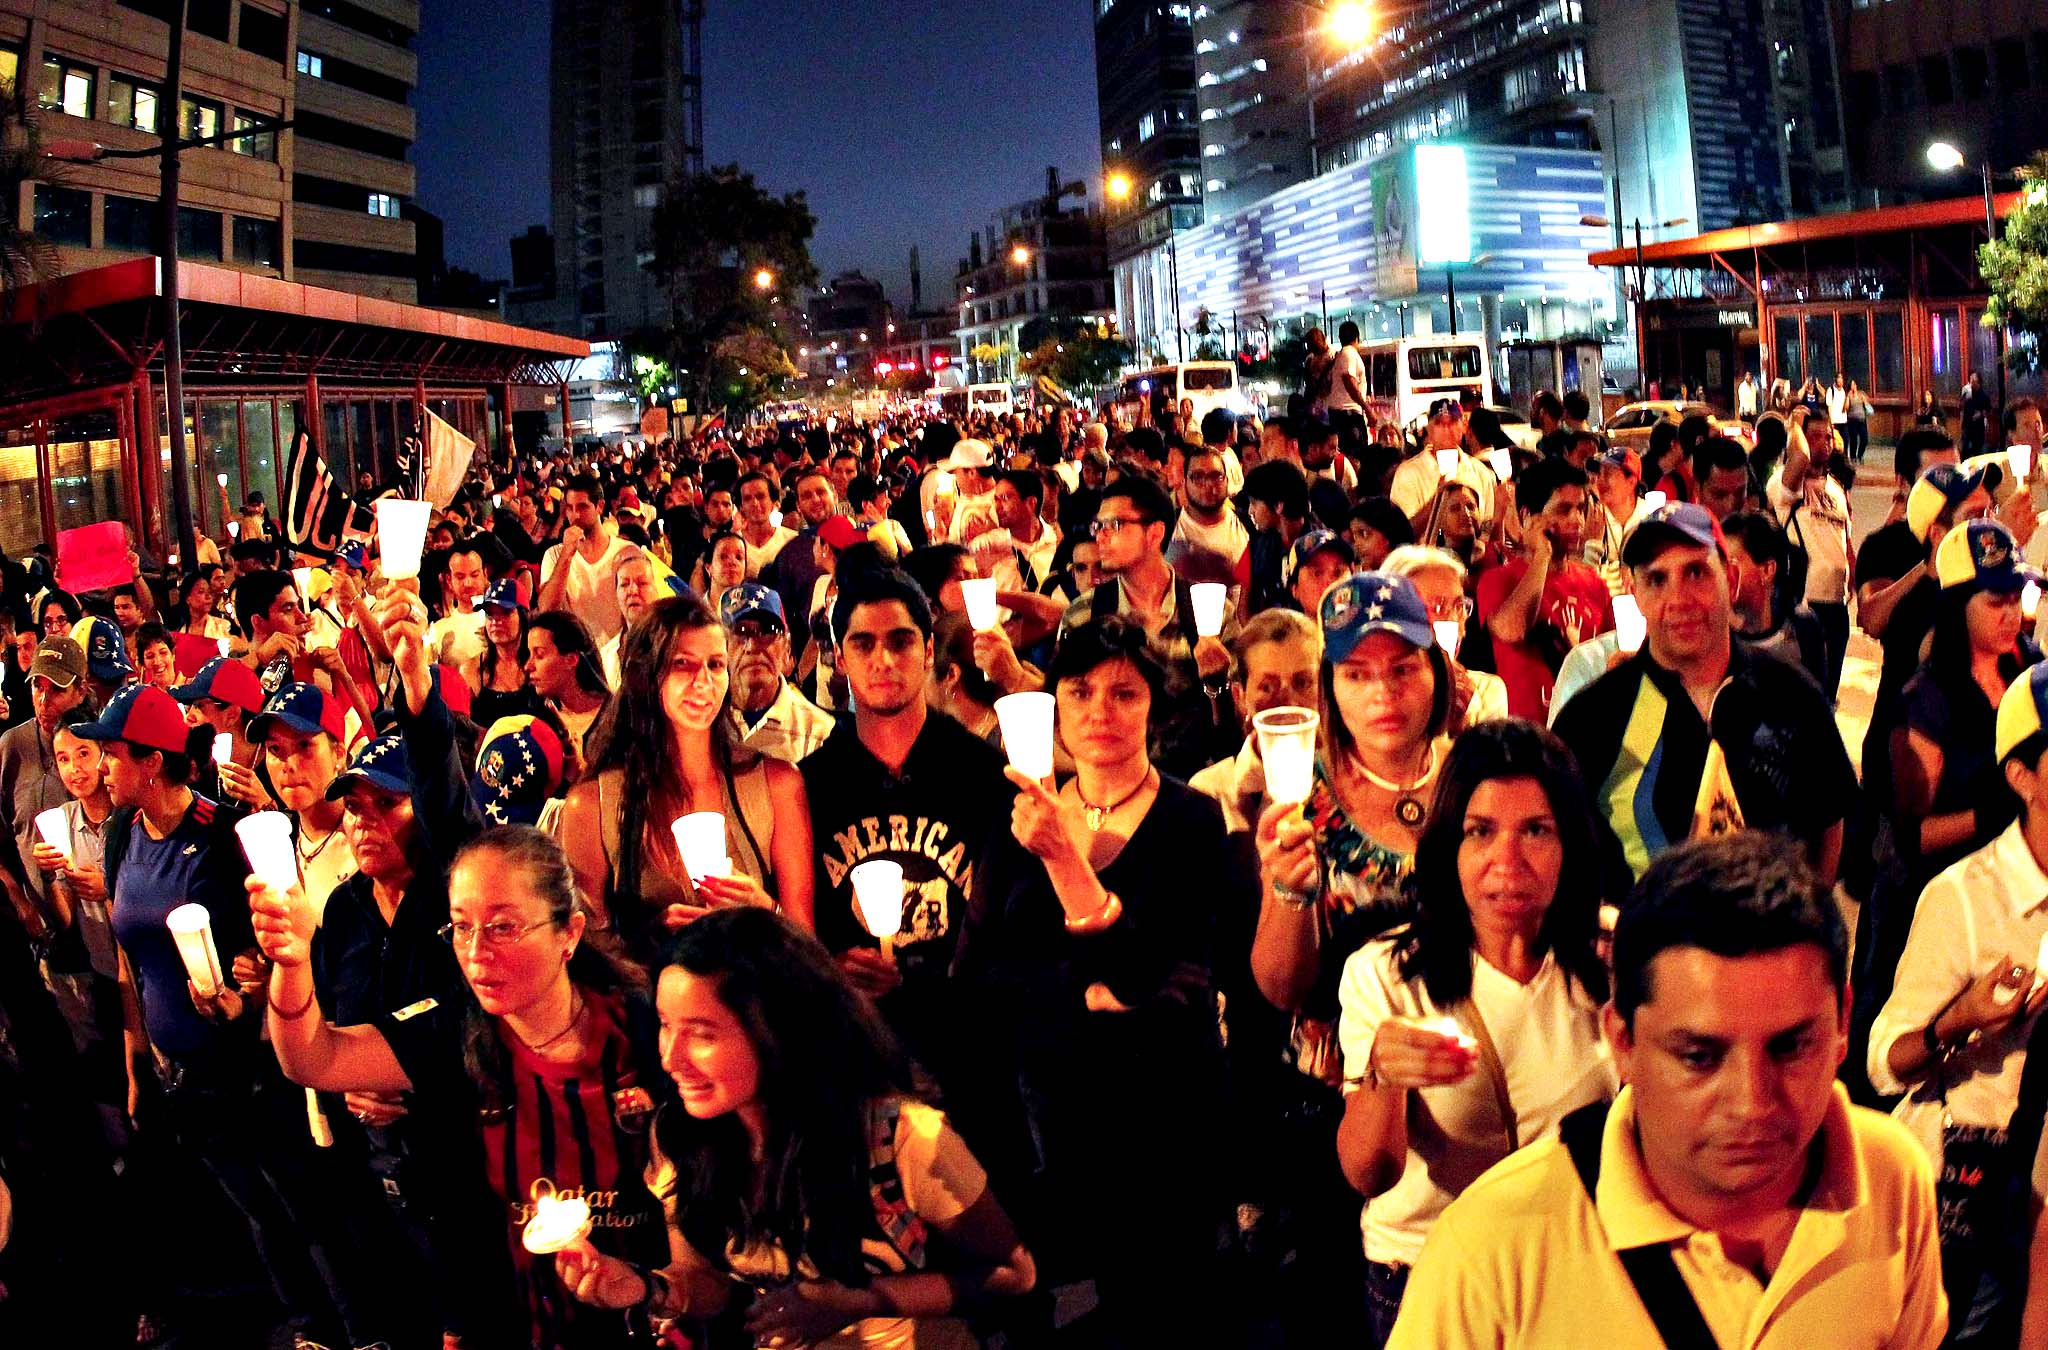 Opposition supporters hold candles as they take part in a rally against Nicolas Maduro's government in Caracas. Venezuela's President Nicolas Maduro was due to host Venezuelan opposition leaders on Thursday at the start of mediated talks intended to stem two months of political unrest that has killed dozens in the OPEC nation.